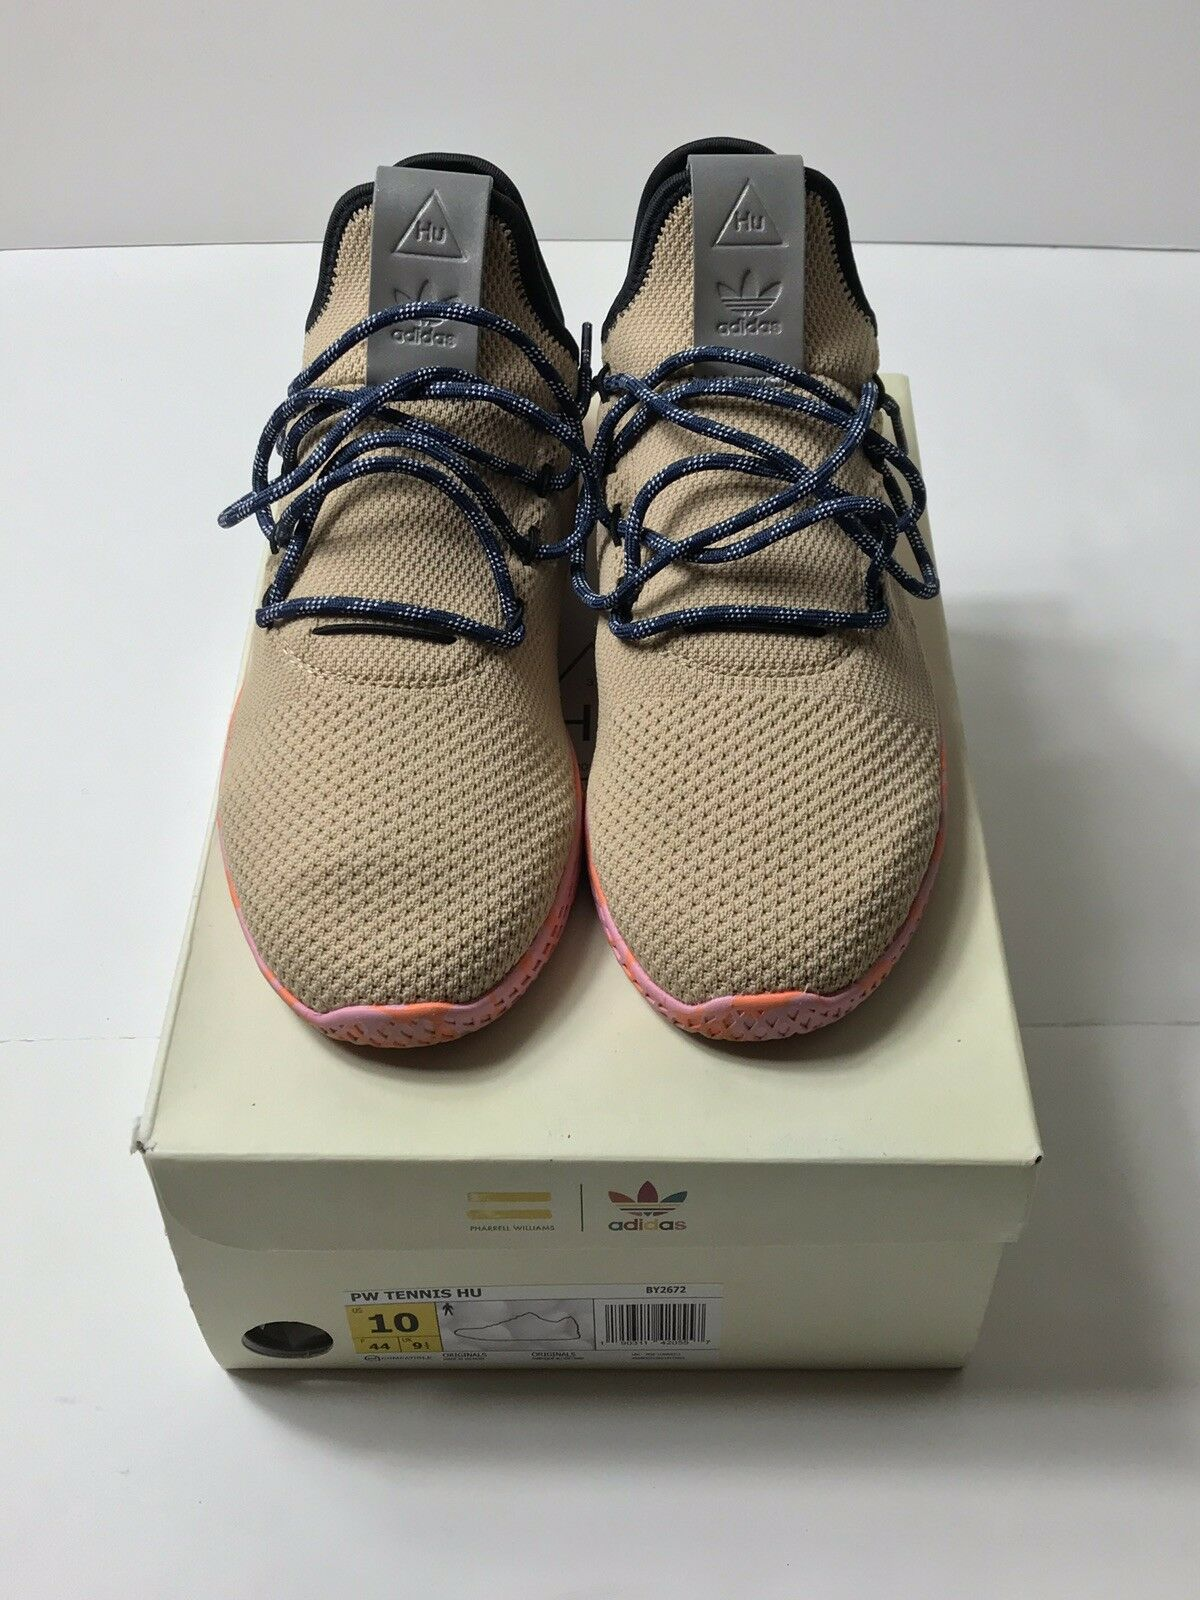 a0bb417aa0950 Adidas Stan Smith Pharrell Williams Tennis HU Tan Pink Marble BY2672 Size 10